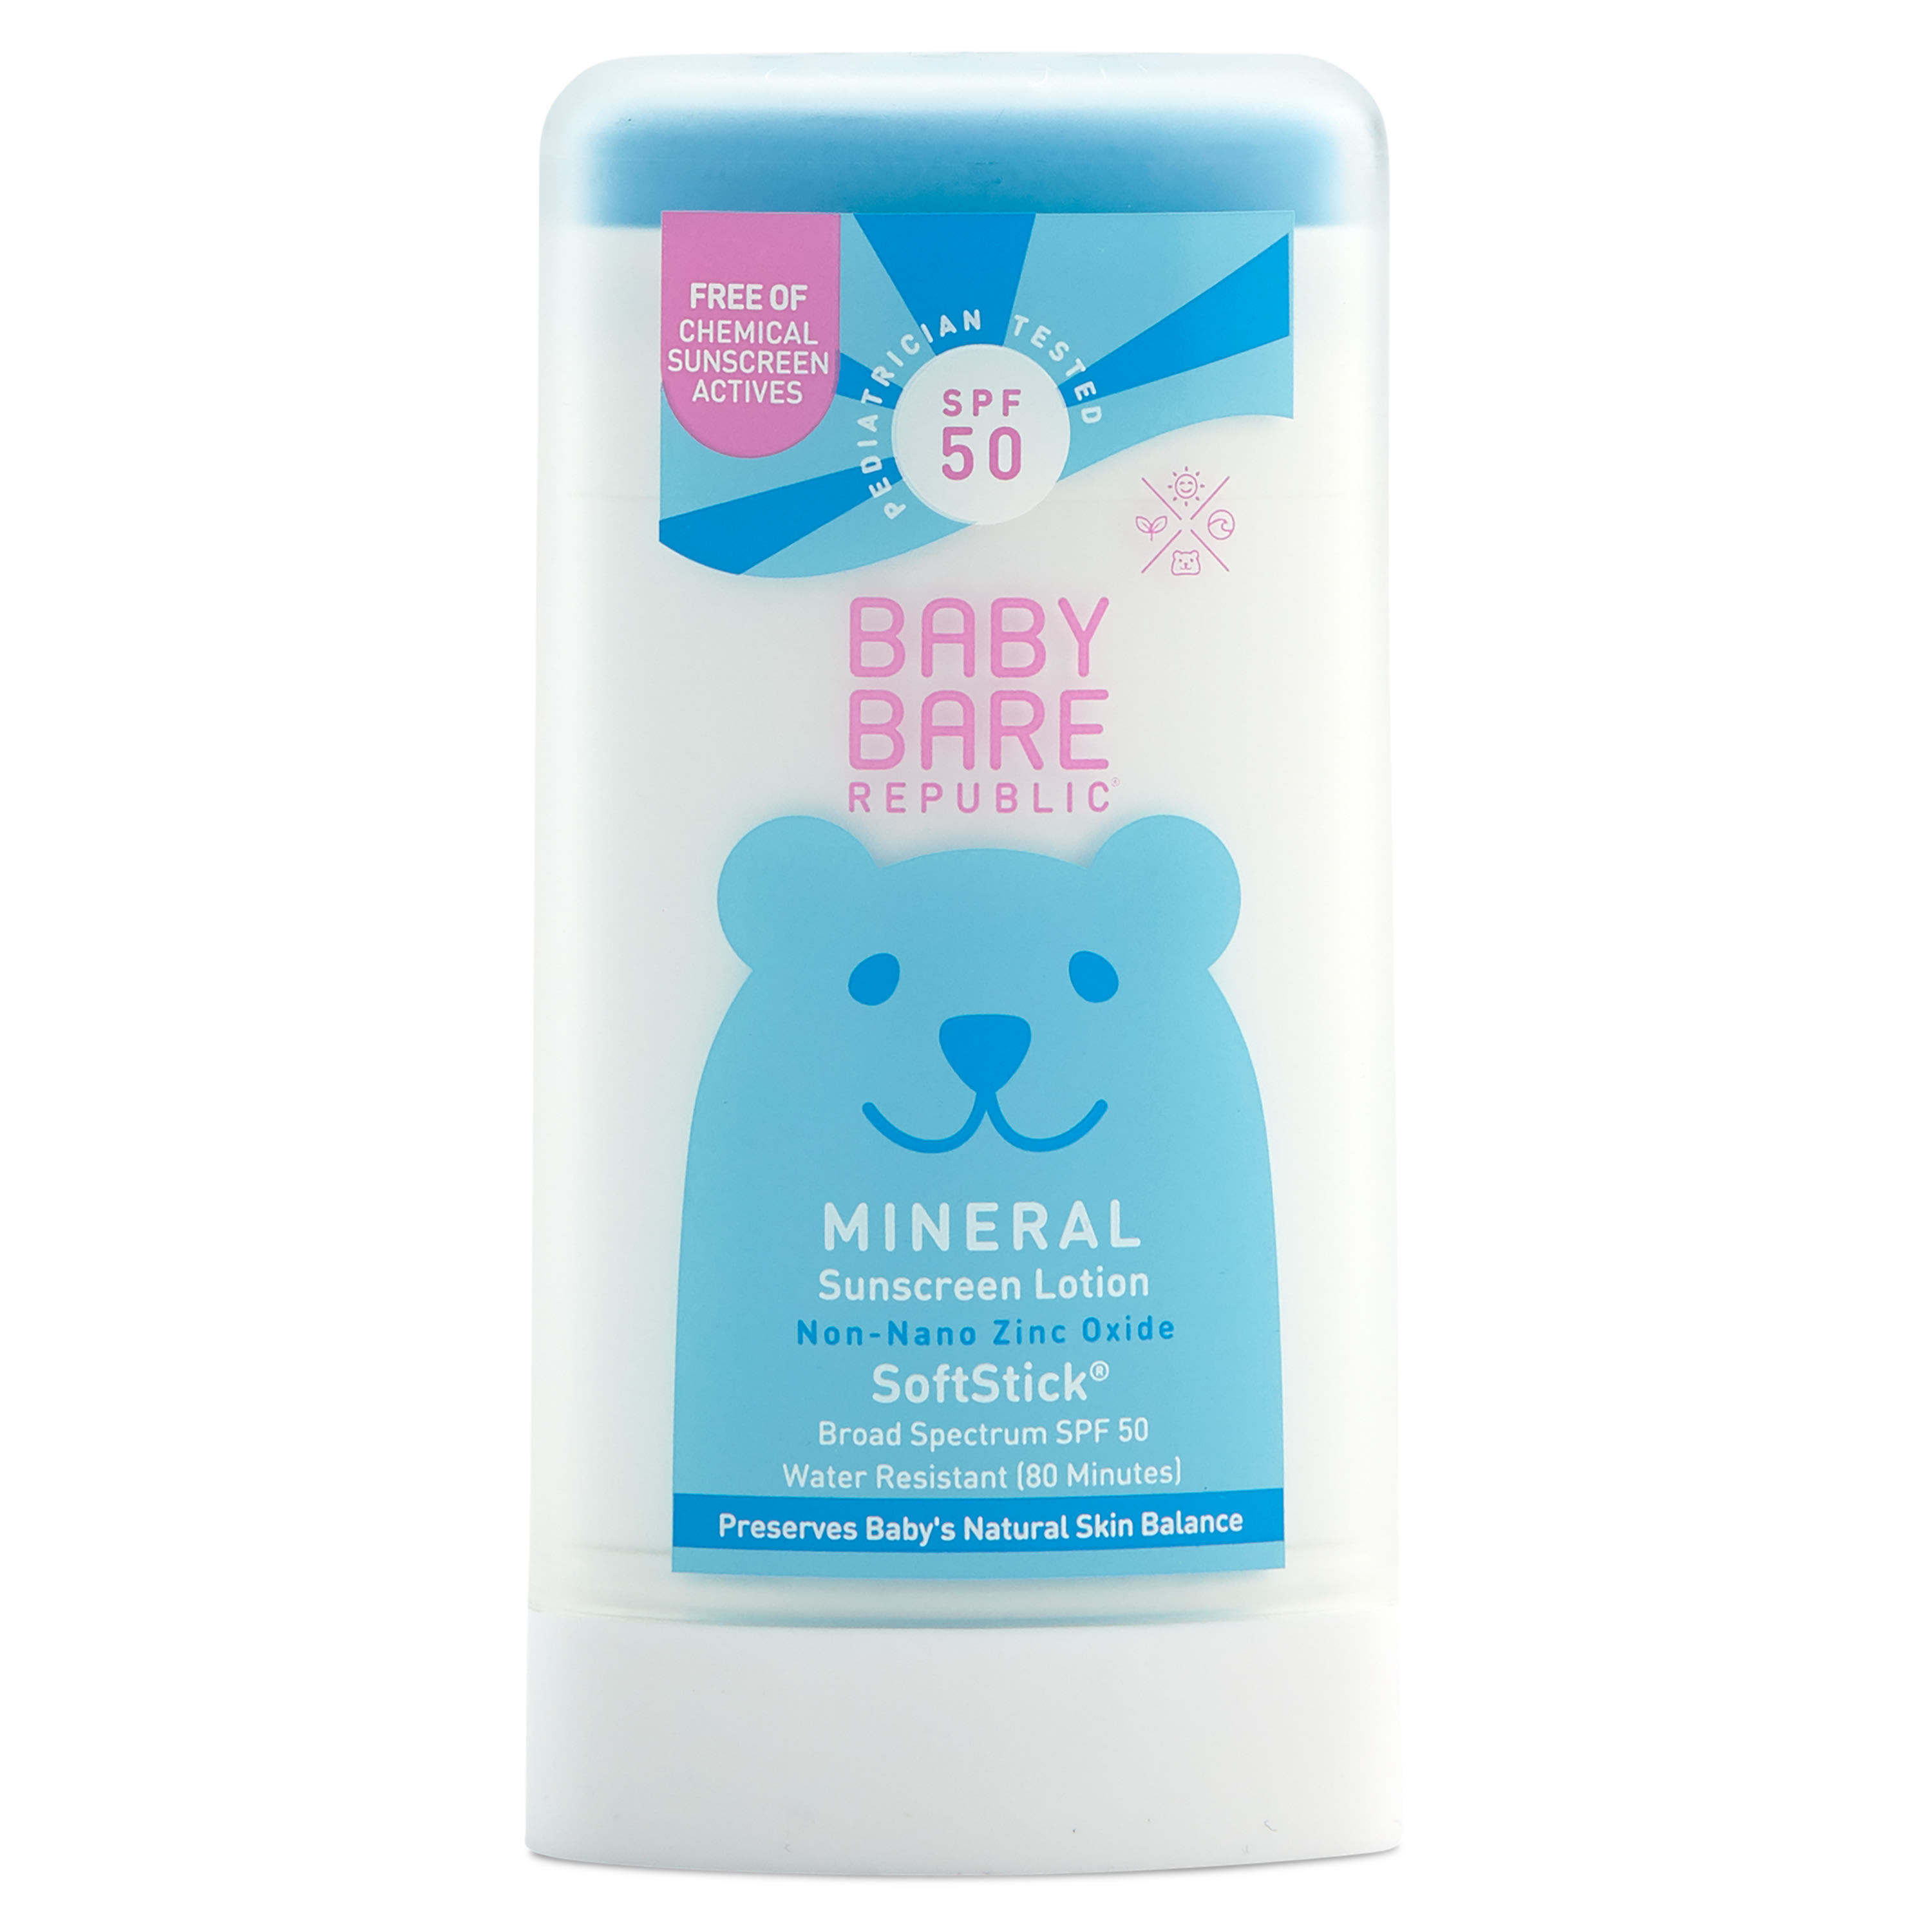 Bare Republic Mineral Baby Sunscreen Face & Body Soft Stick SPF 50, Unscented - .9 oz